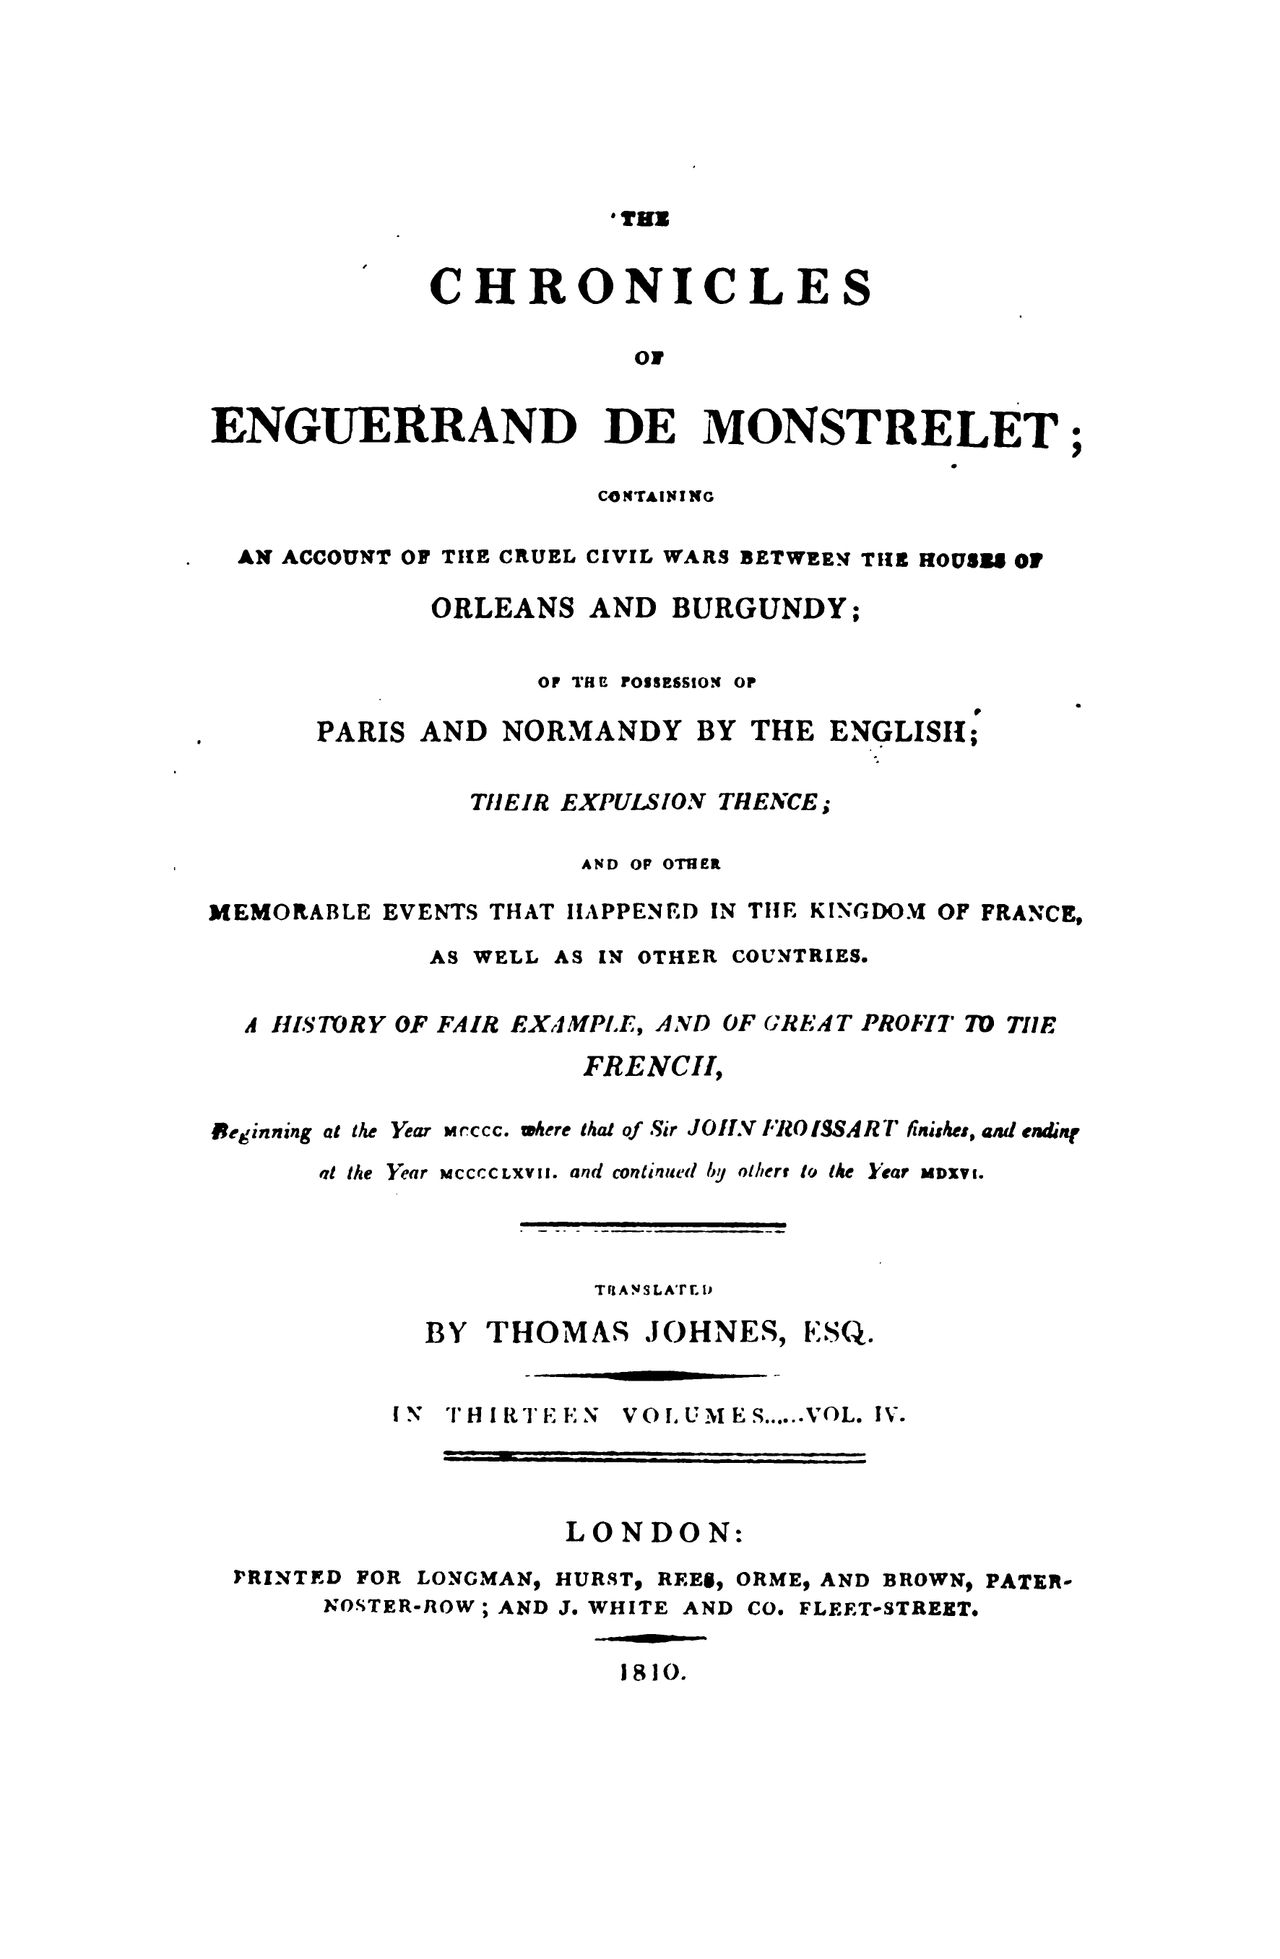 Enguerrand de Monstrelet chronicle vol.4